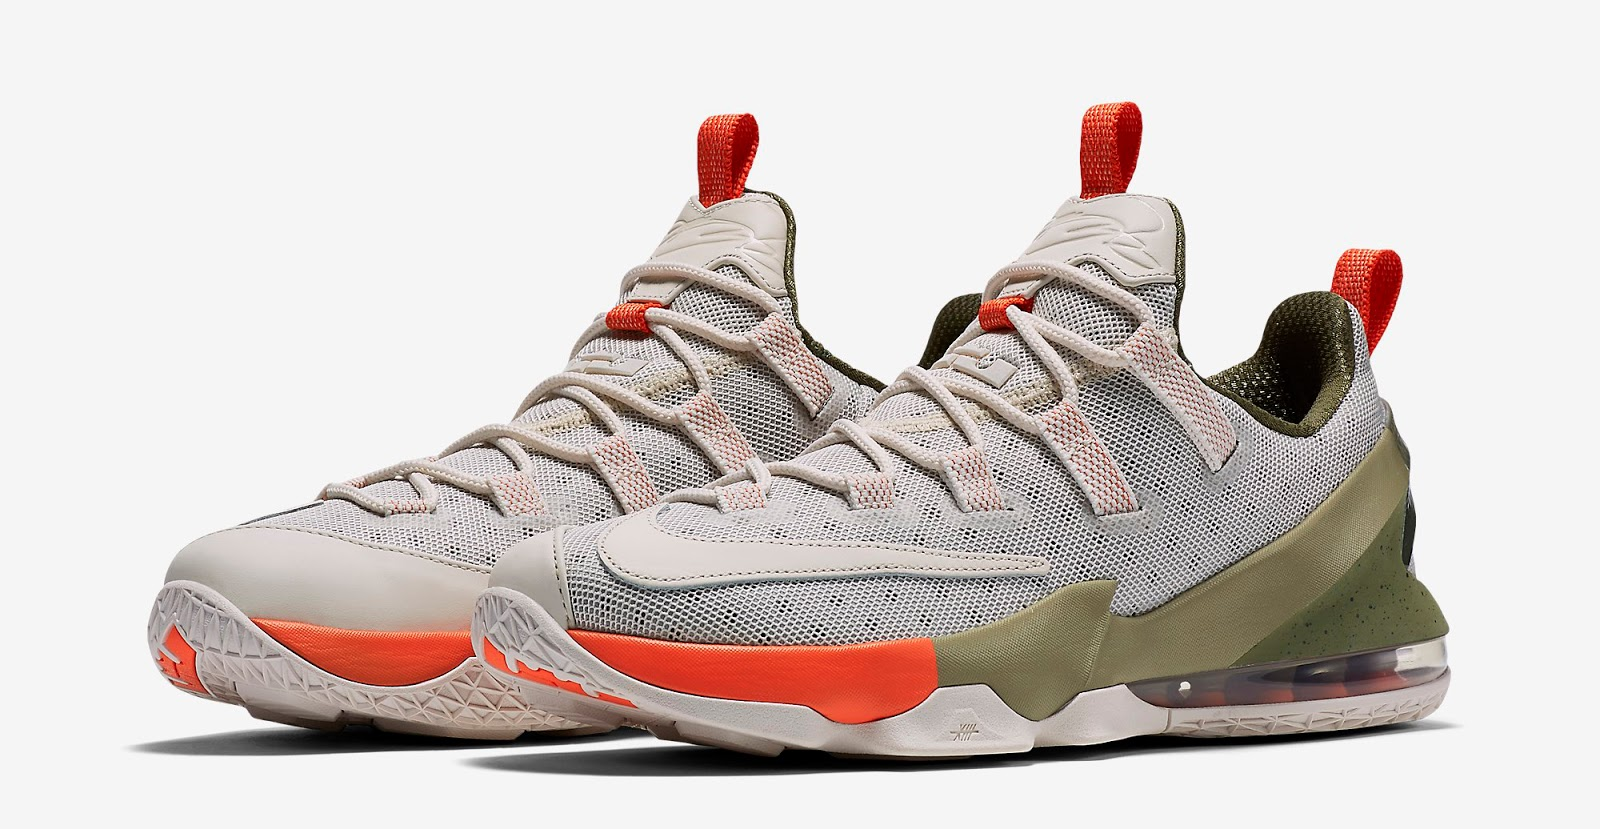 new arrival 4a945 f2cd2 Nike LeBron 13 Low LMTD